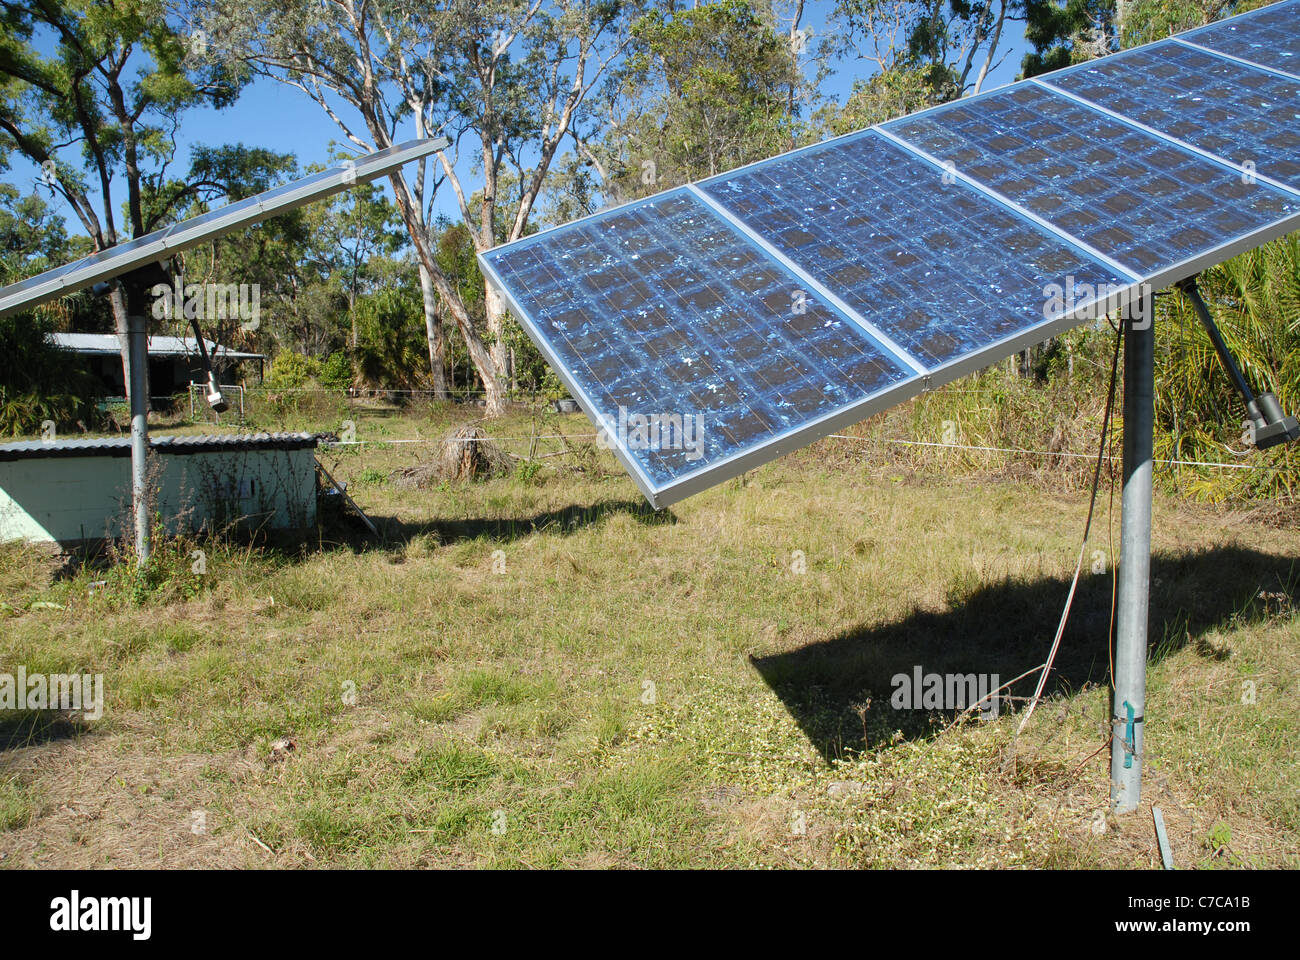 Solar PV panels installed in a rural property in the outback, Queensland,  Australia. - Stock Image